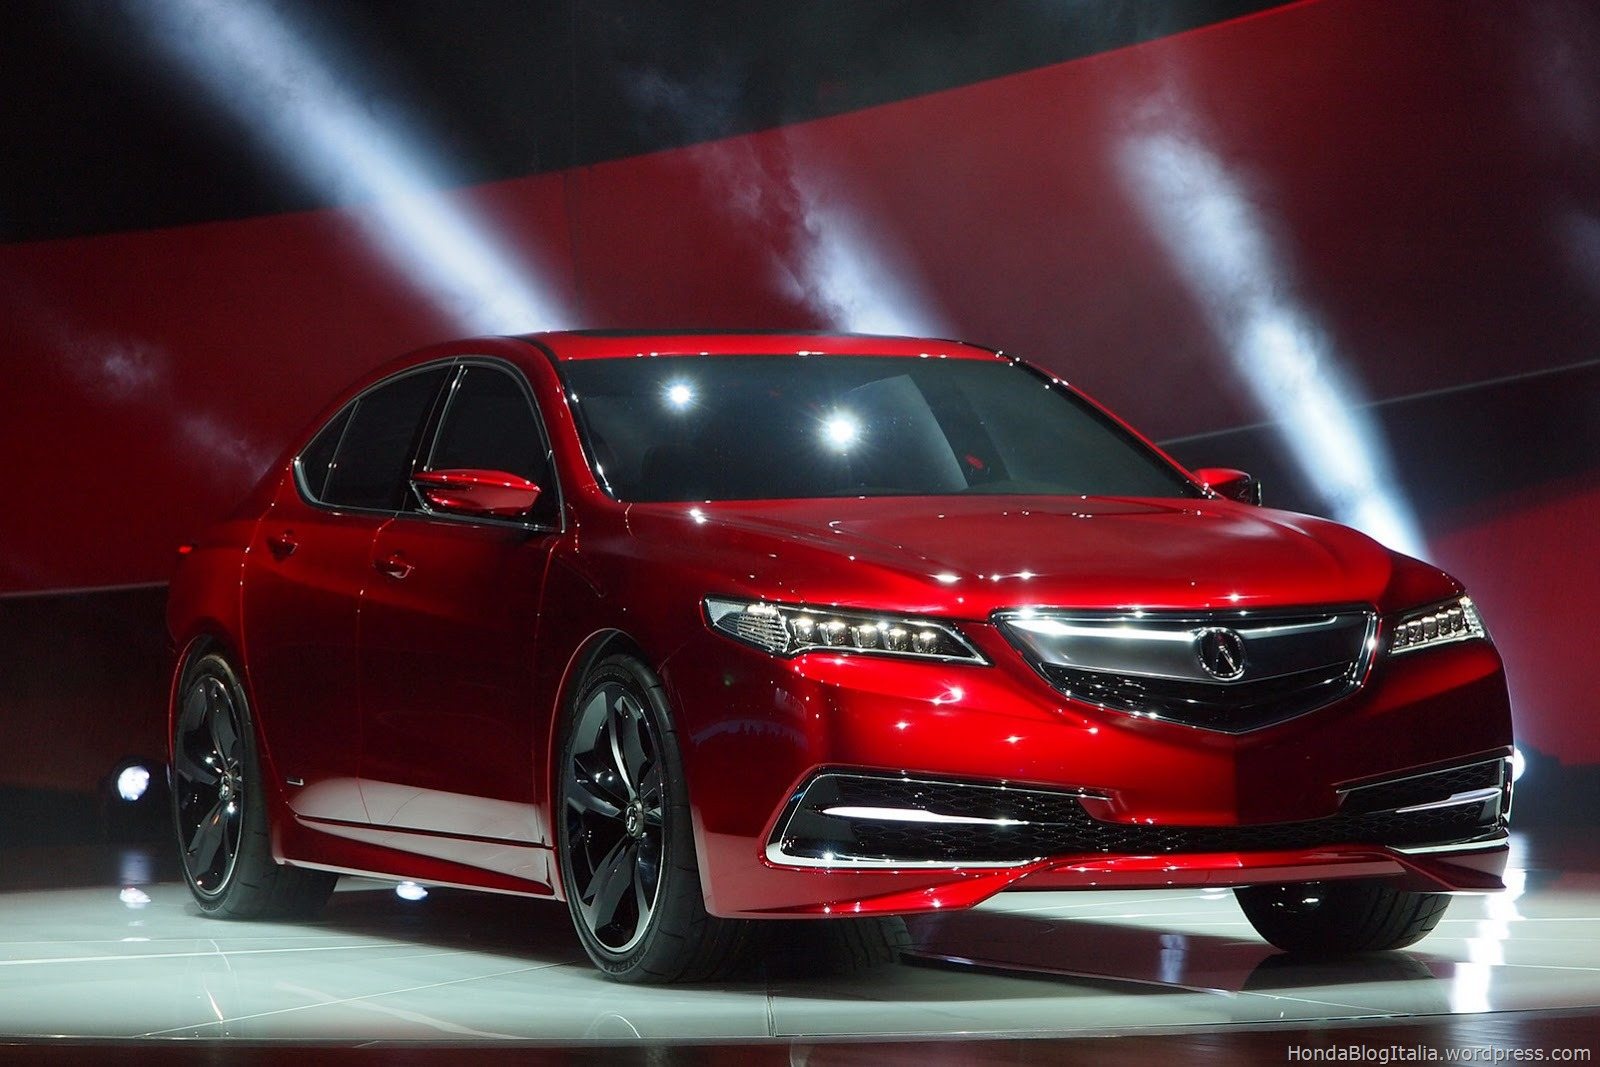 acura tlx prototype honda blog italia. Black Bedroom Furniture Sets. Home Design Ideas